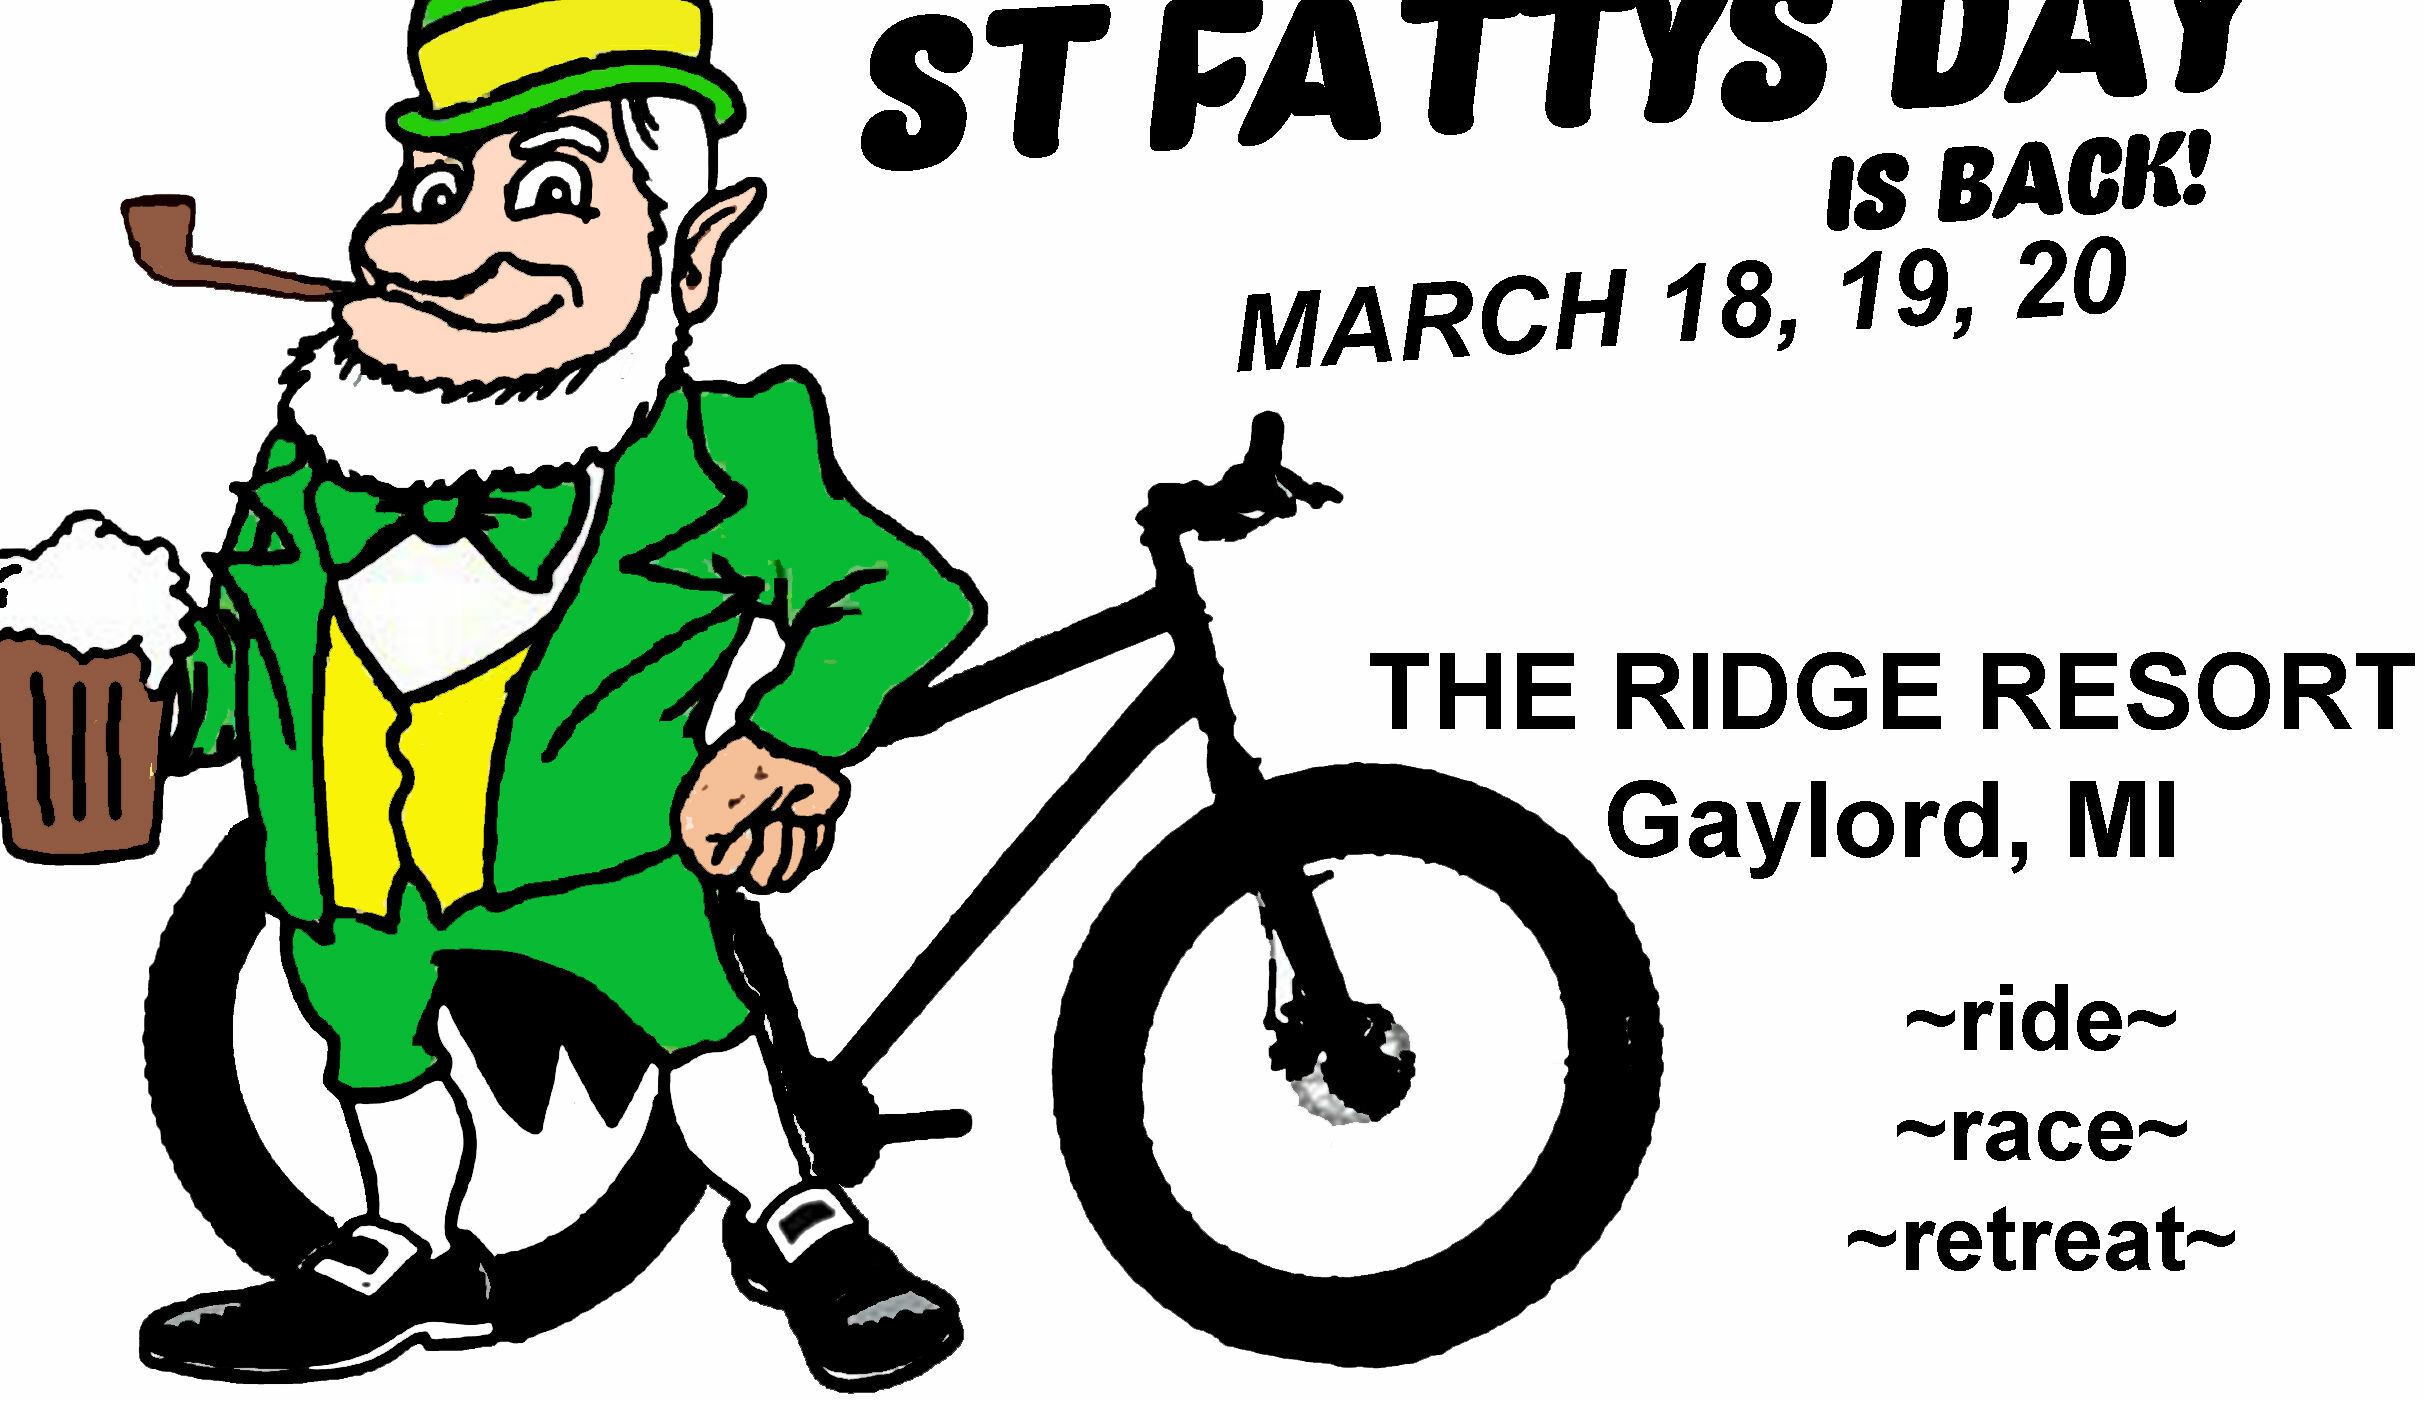 St Fatty's Day ~ Fatbike Event